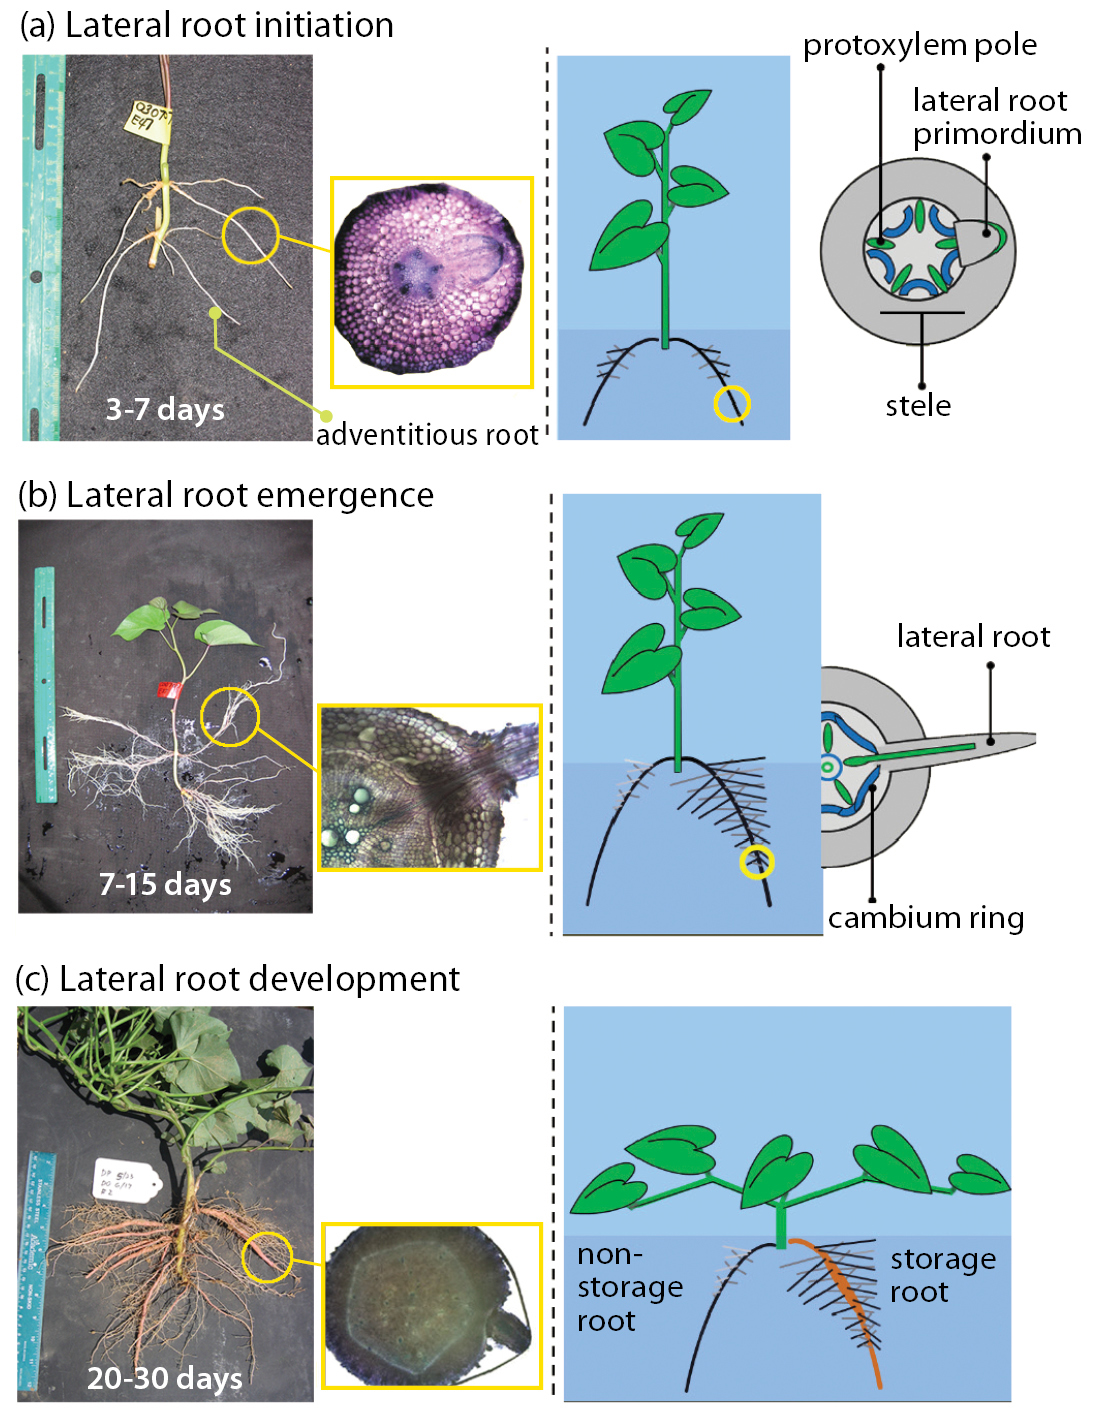 Local nitrogen variability alters root architecture and influences storage root formation in the Beauregard sweet potato